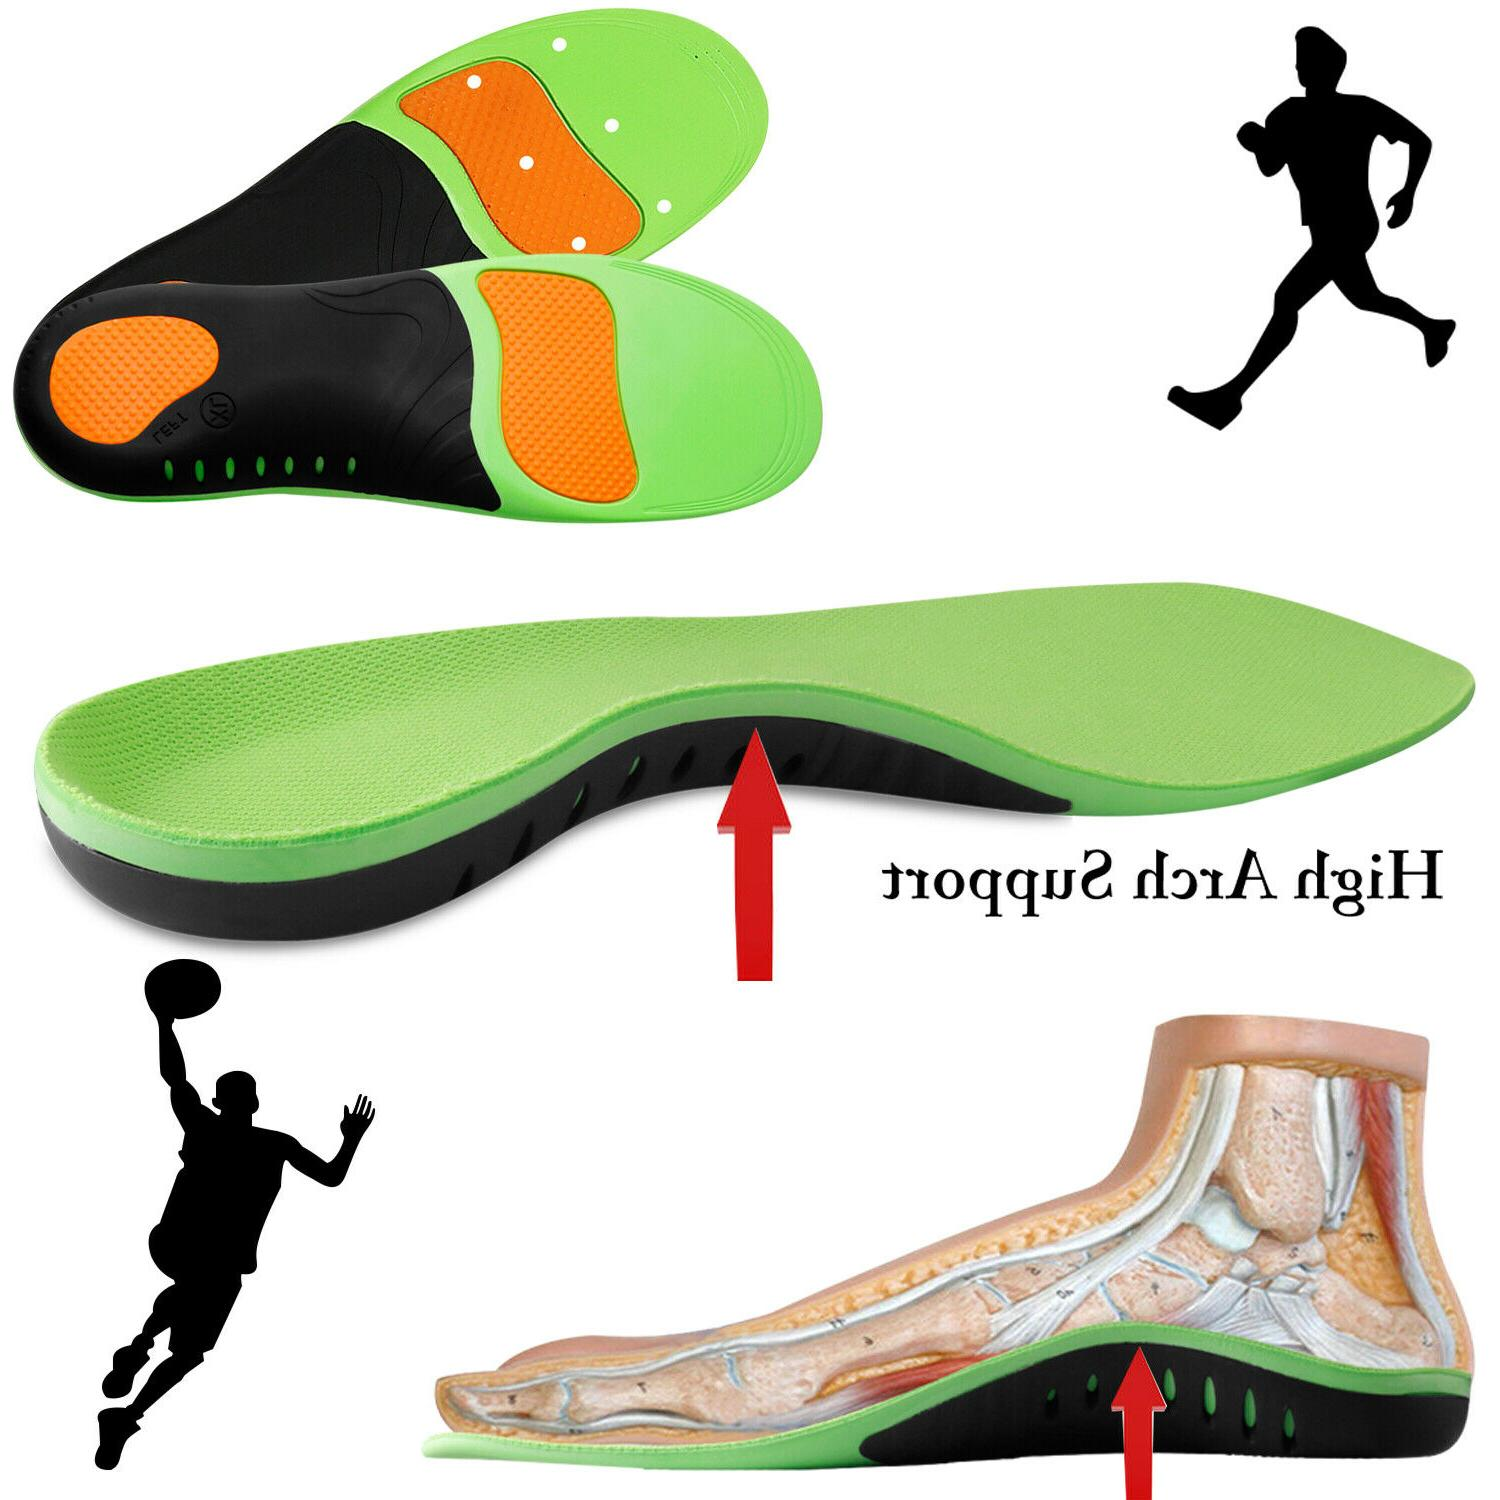 orthotic shoe insoles inserts flat foot high